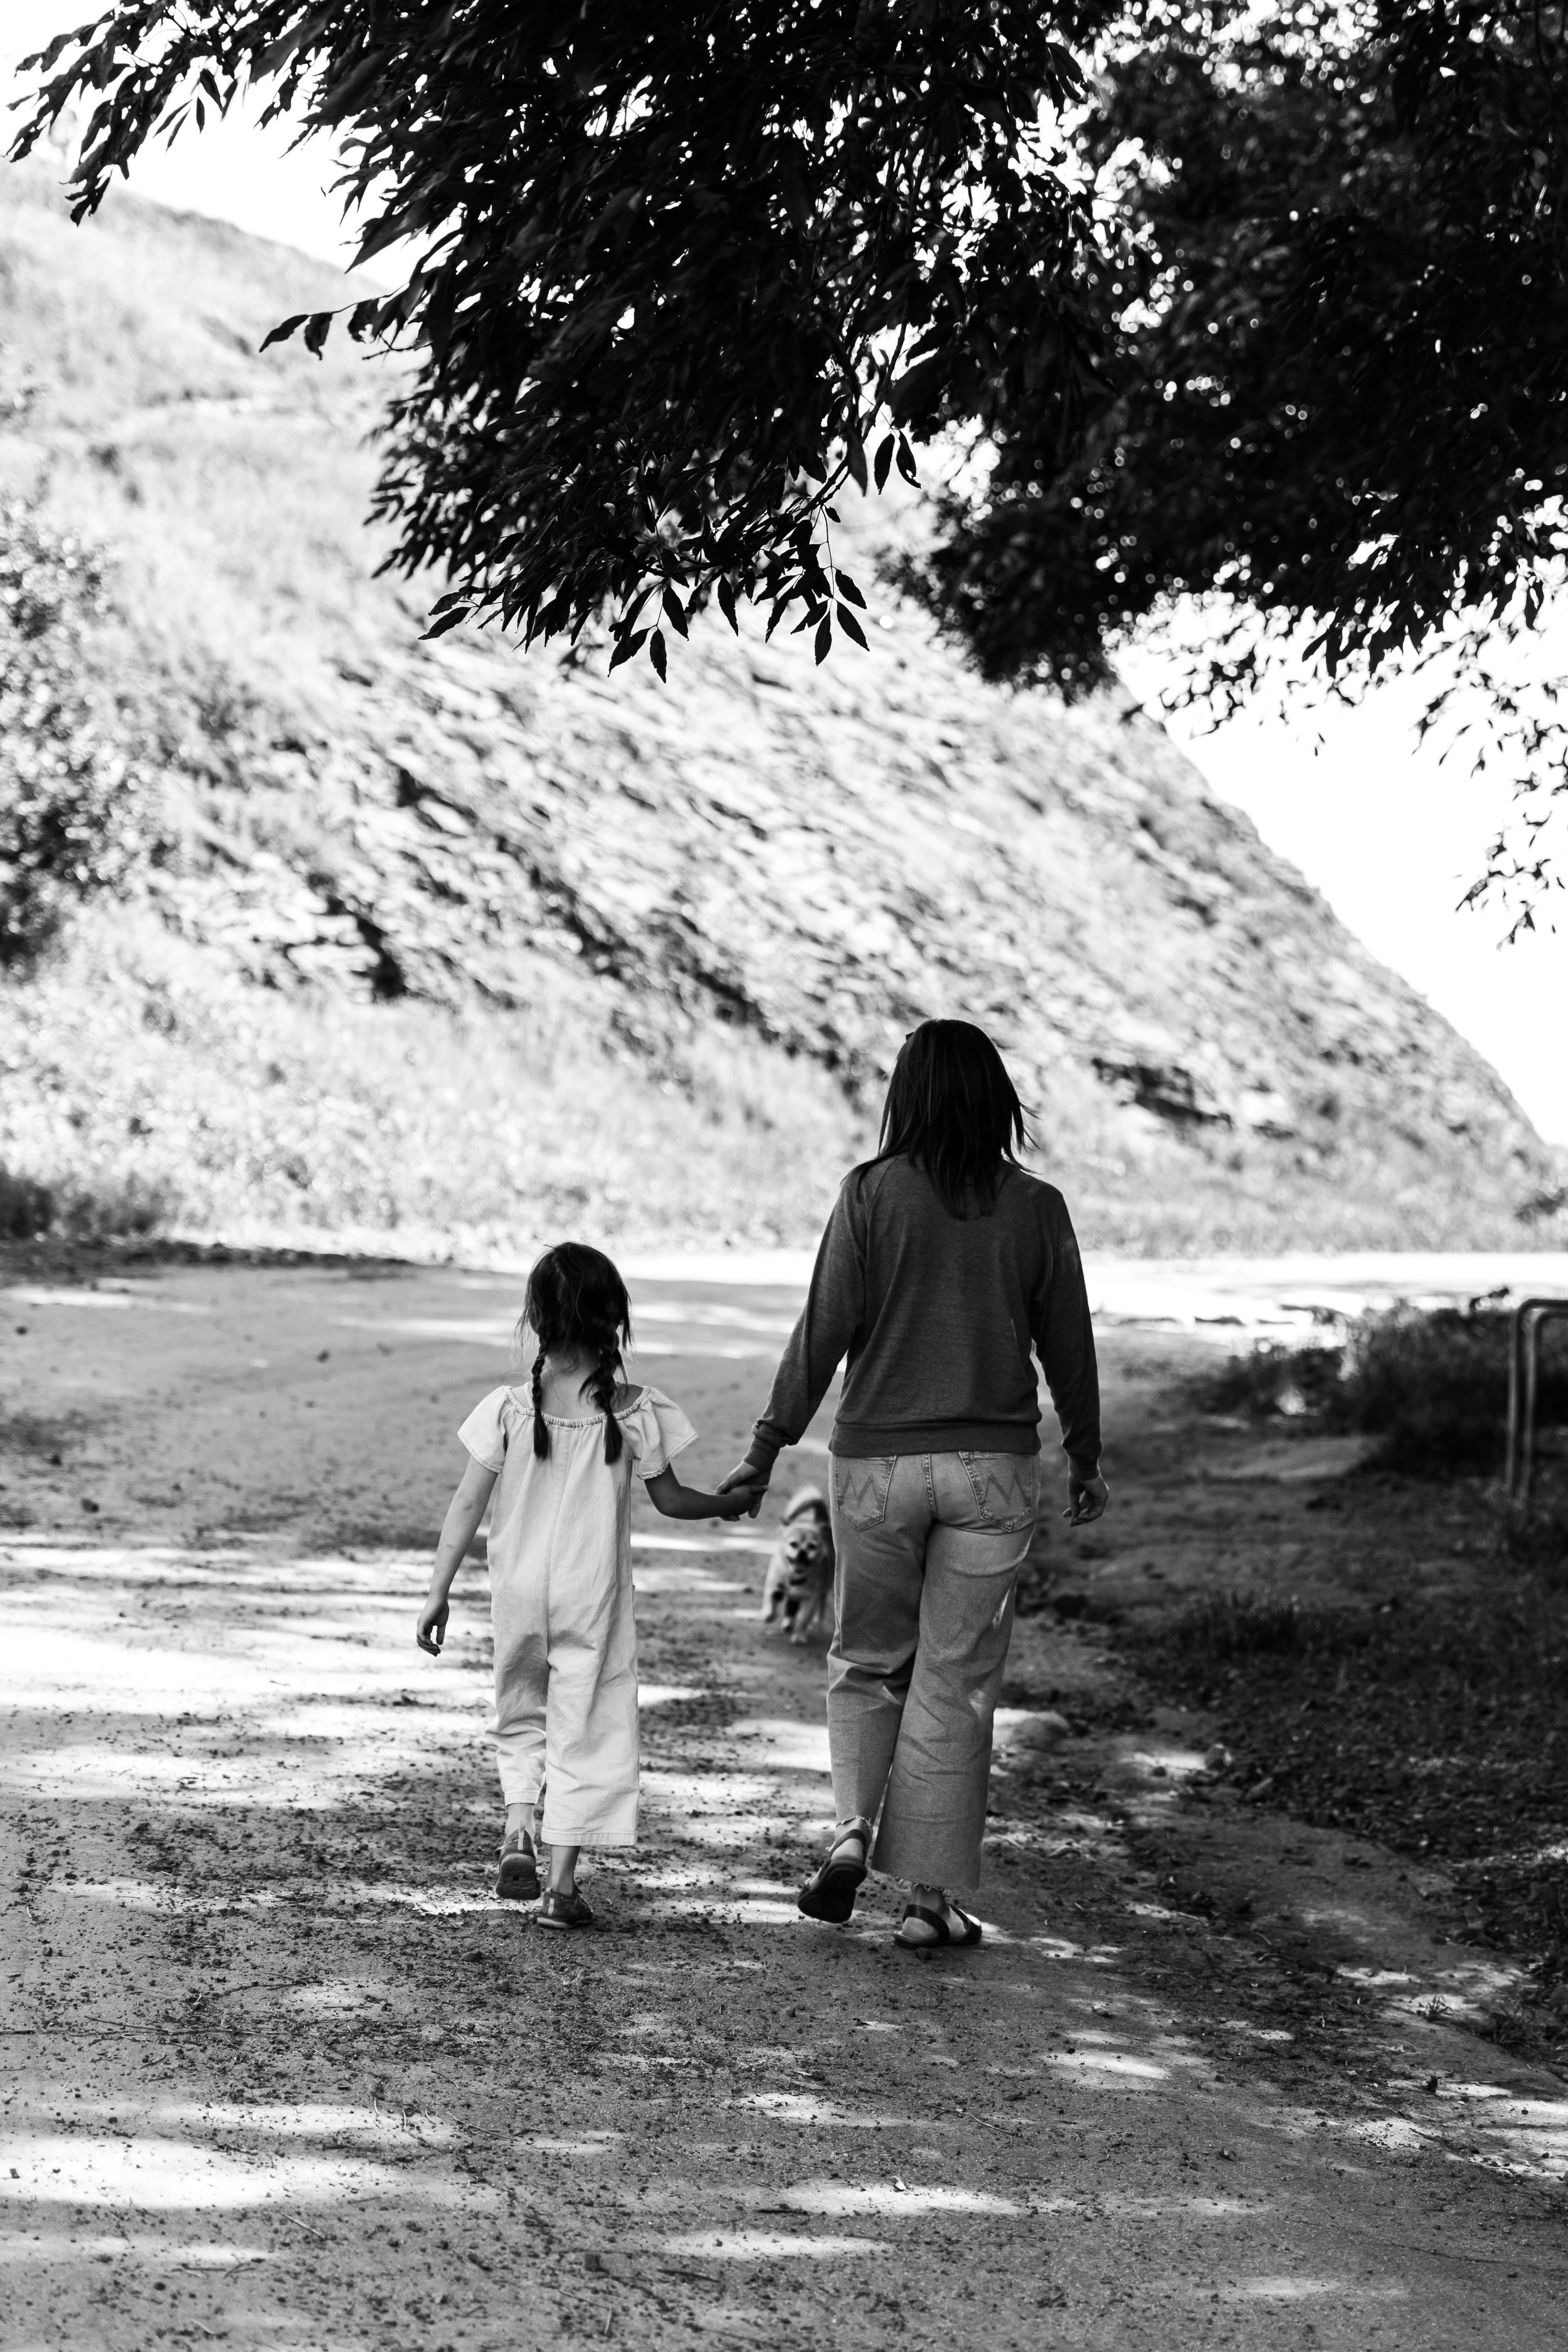 L and L walking b and w.jpg